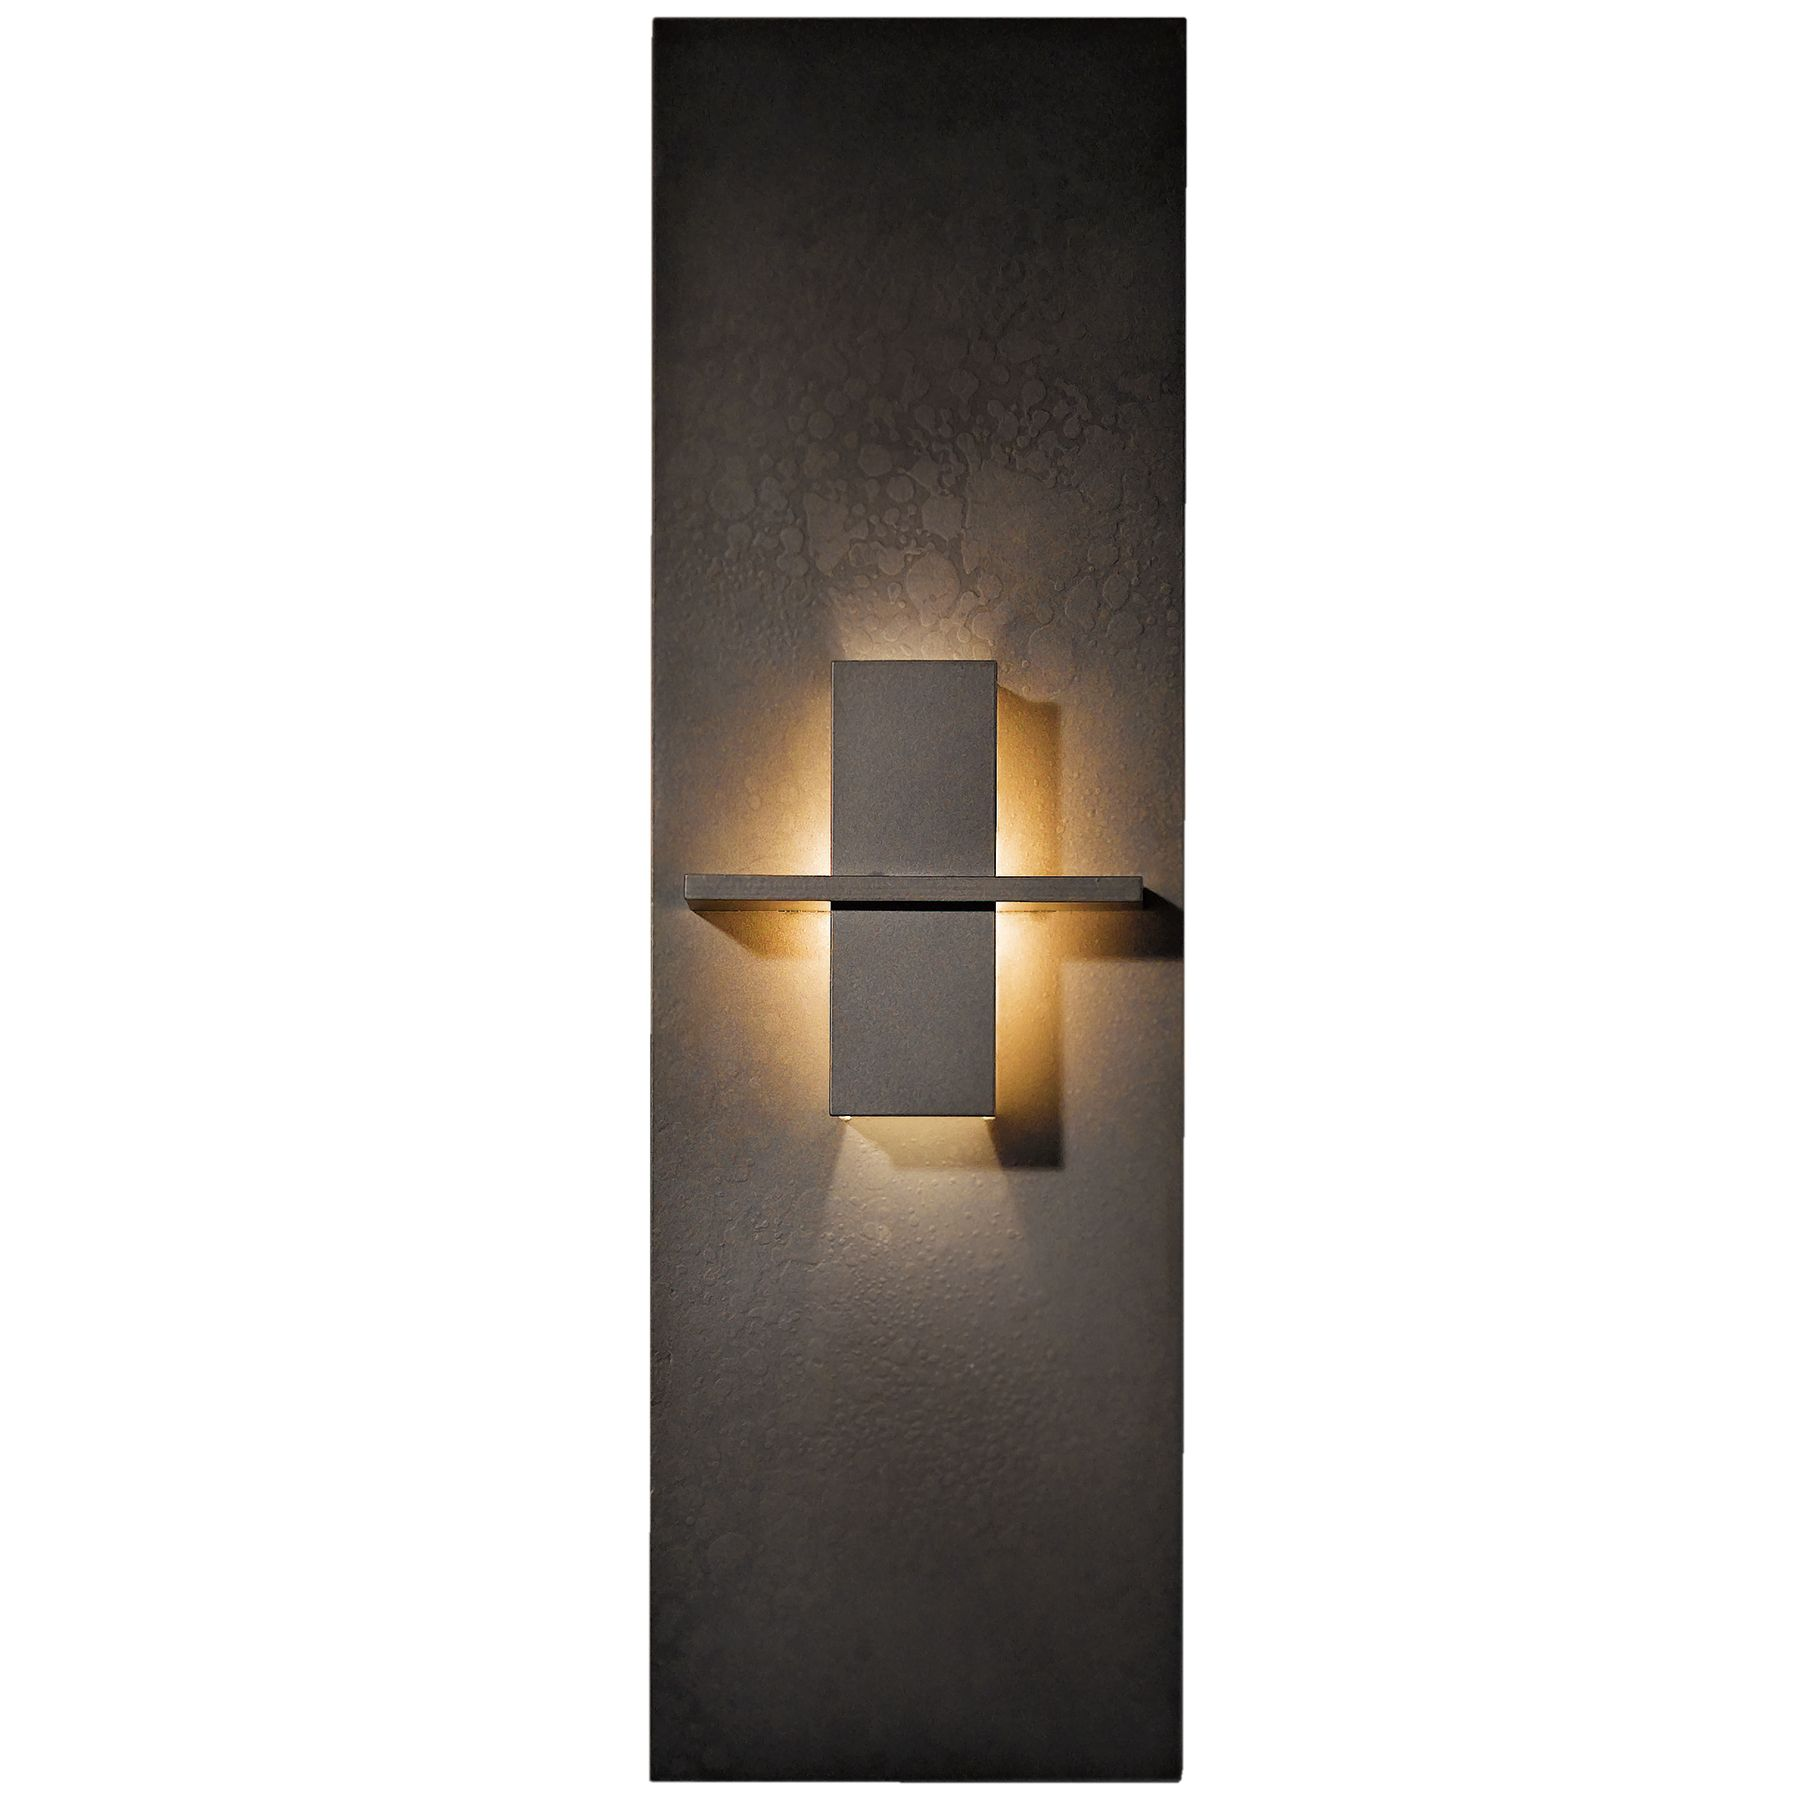 Aperture Vertical Wall Light By Hubbardton Forge 217520 1004 In 2020 Glass Diffuser Wall Lights Sconces